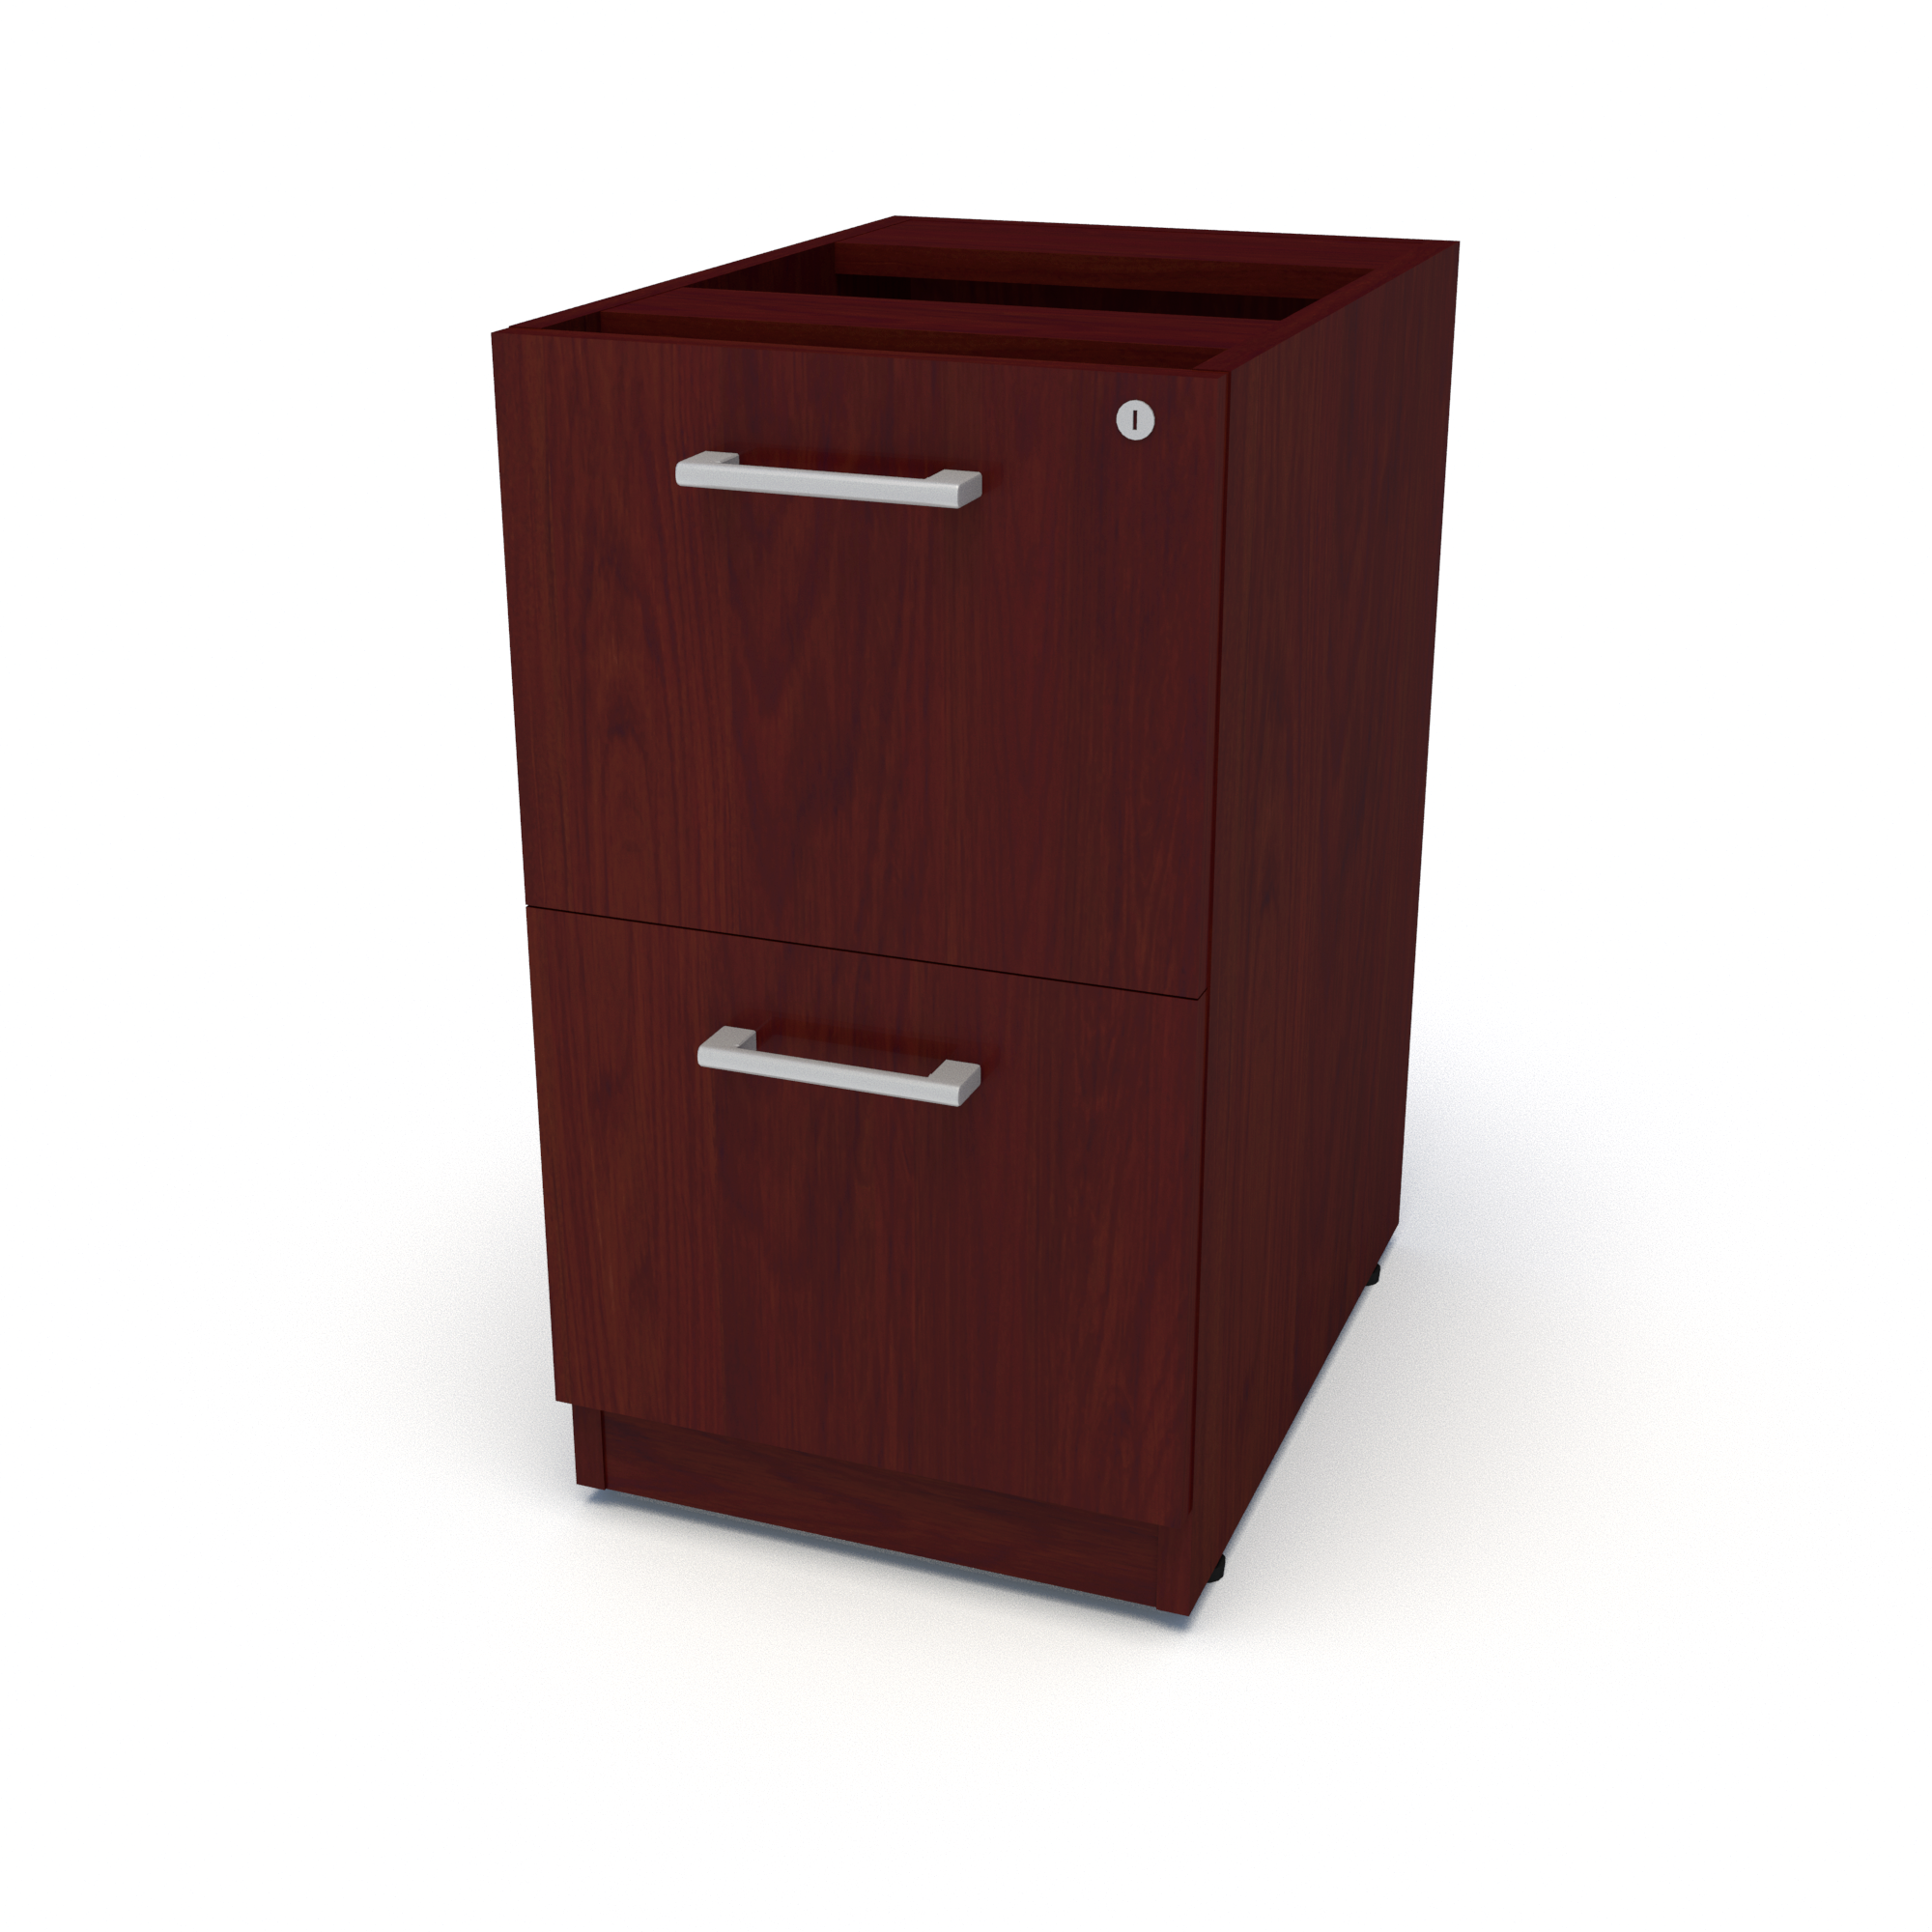 Top Supporting Pedestal, File File (American Cherry)